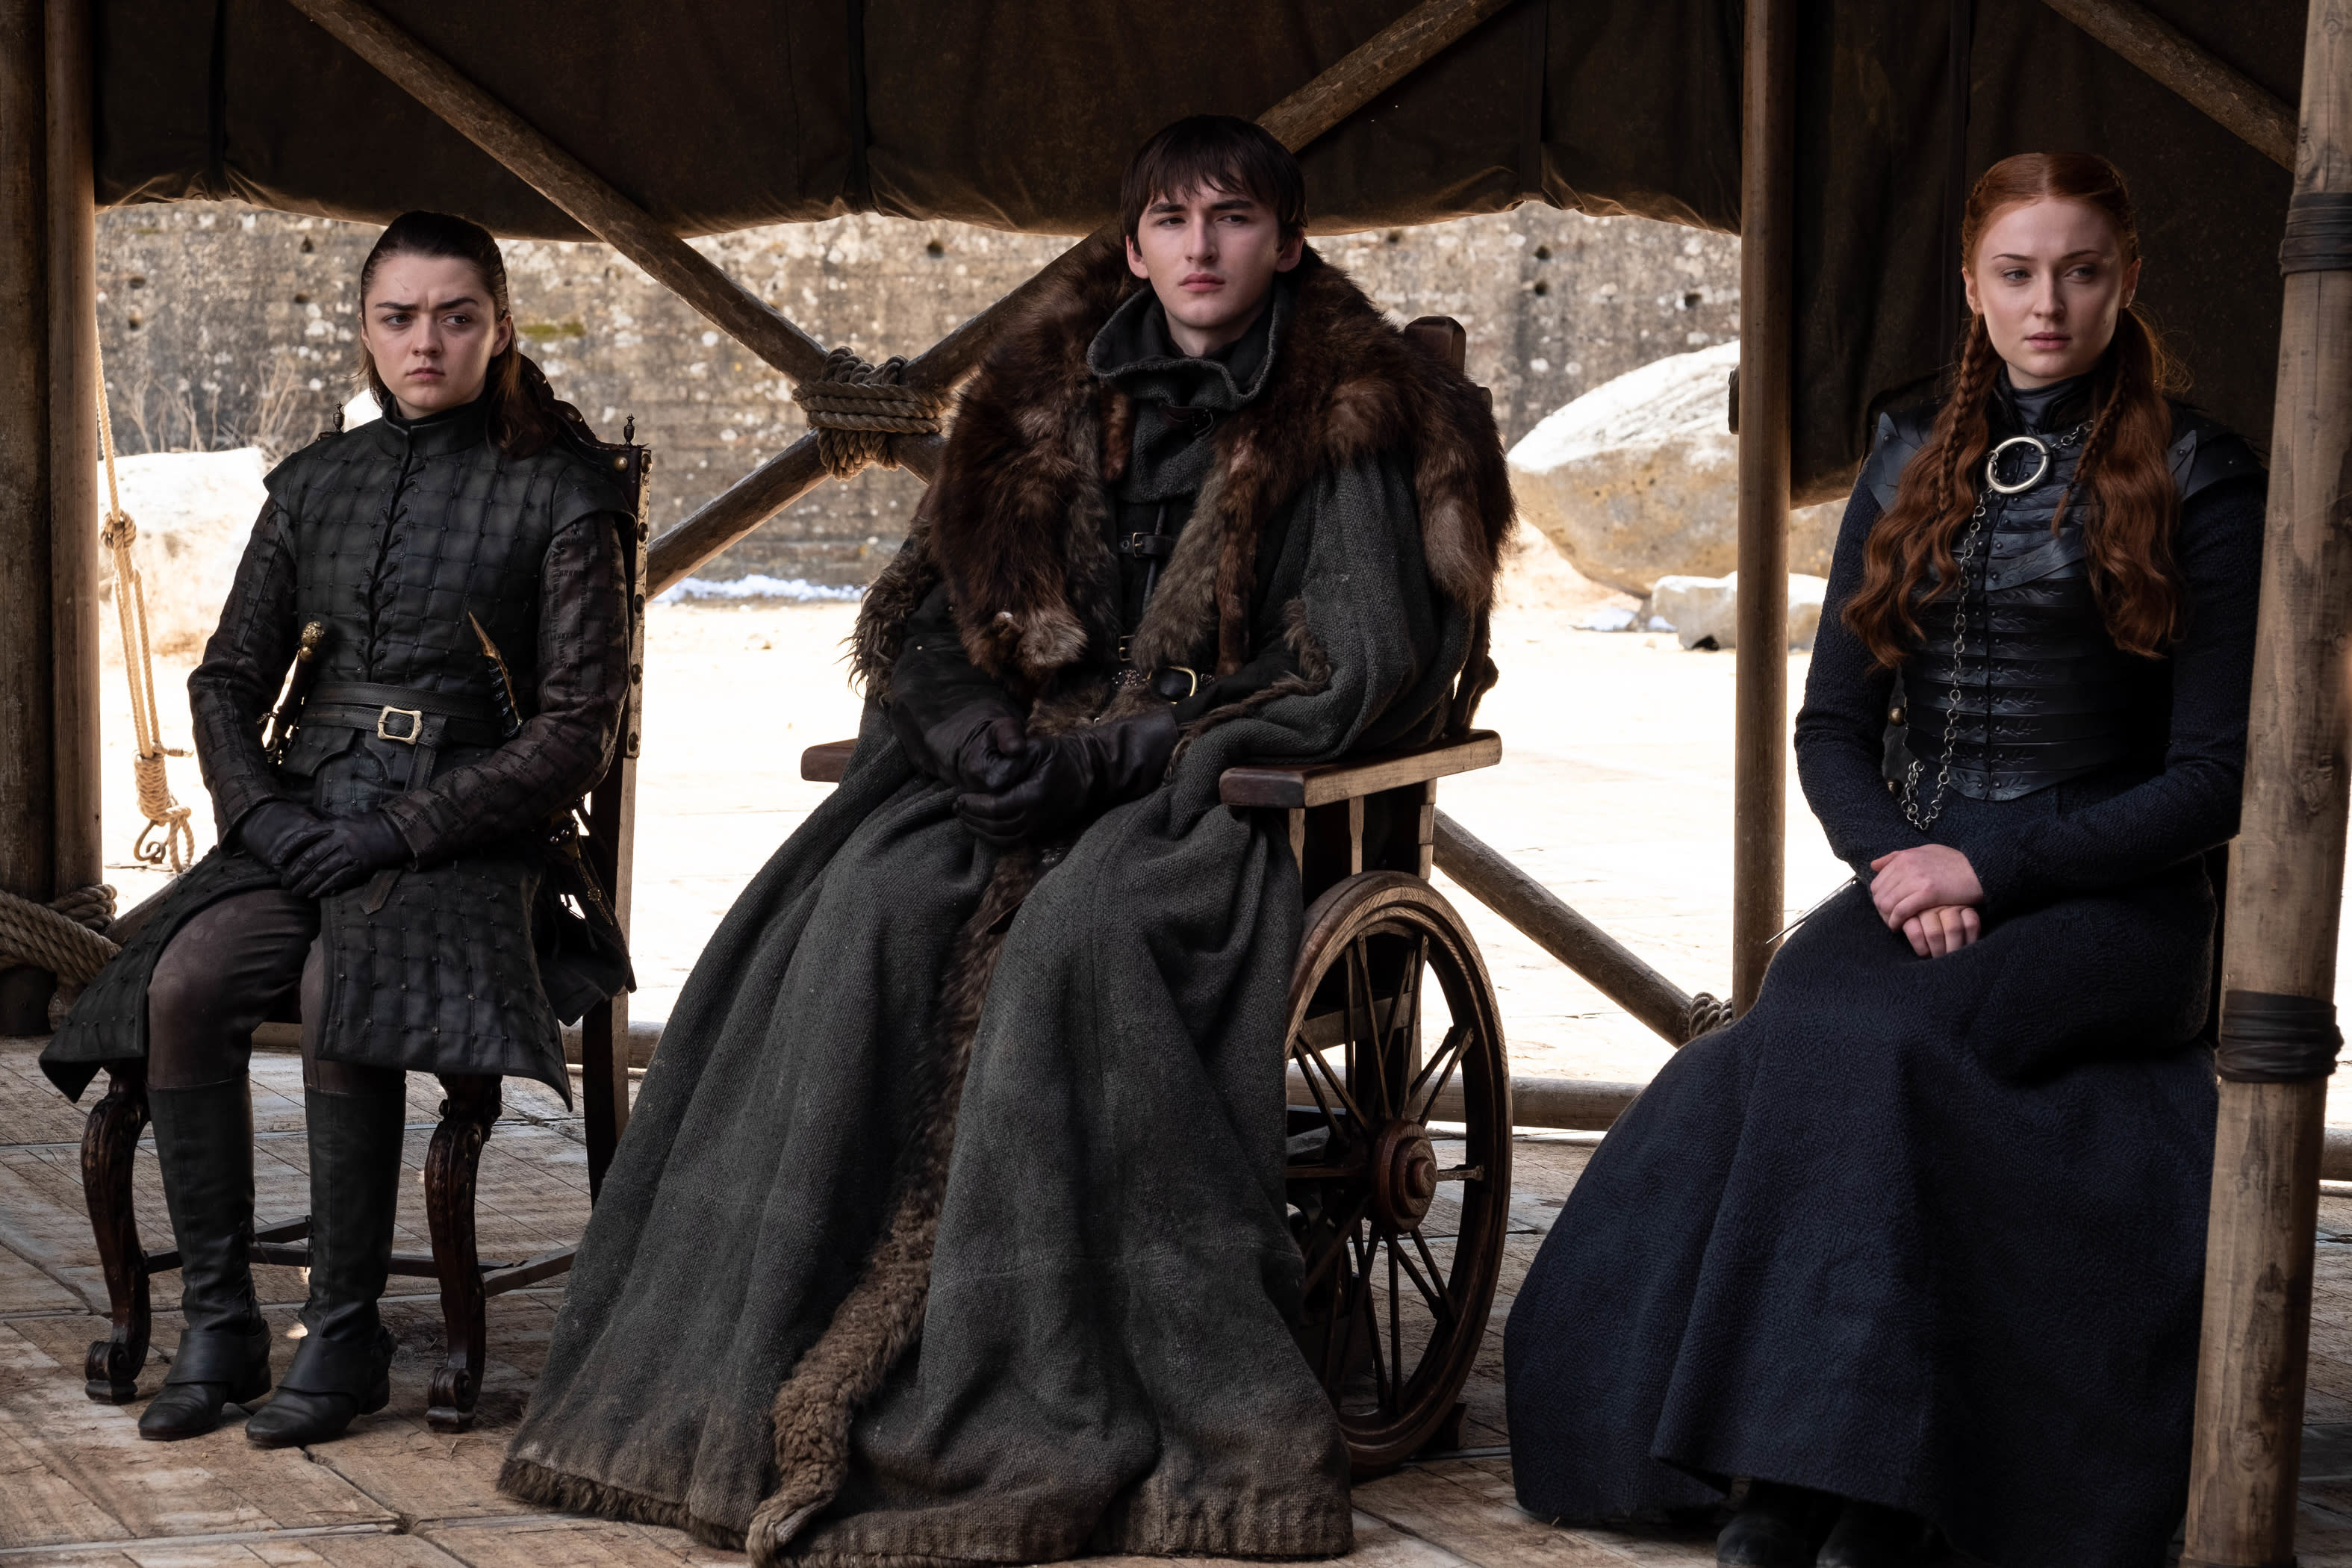 Game of Thrones Season 8 Episode 6 Review: A Song of Fire and Ice